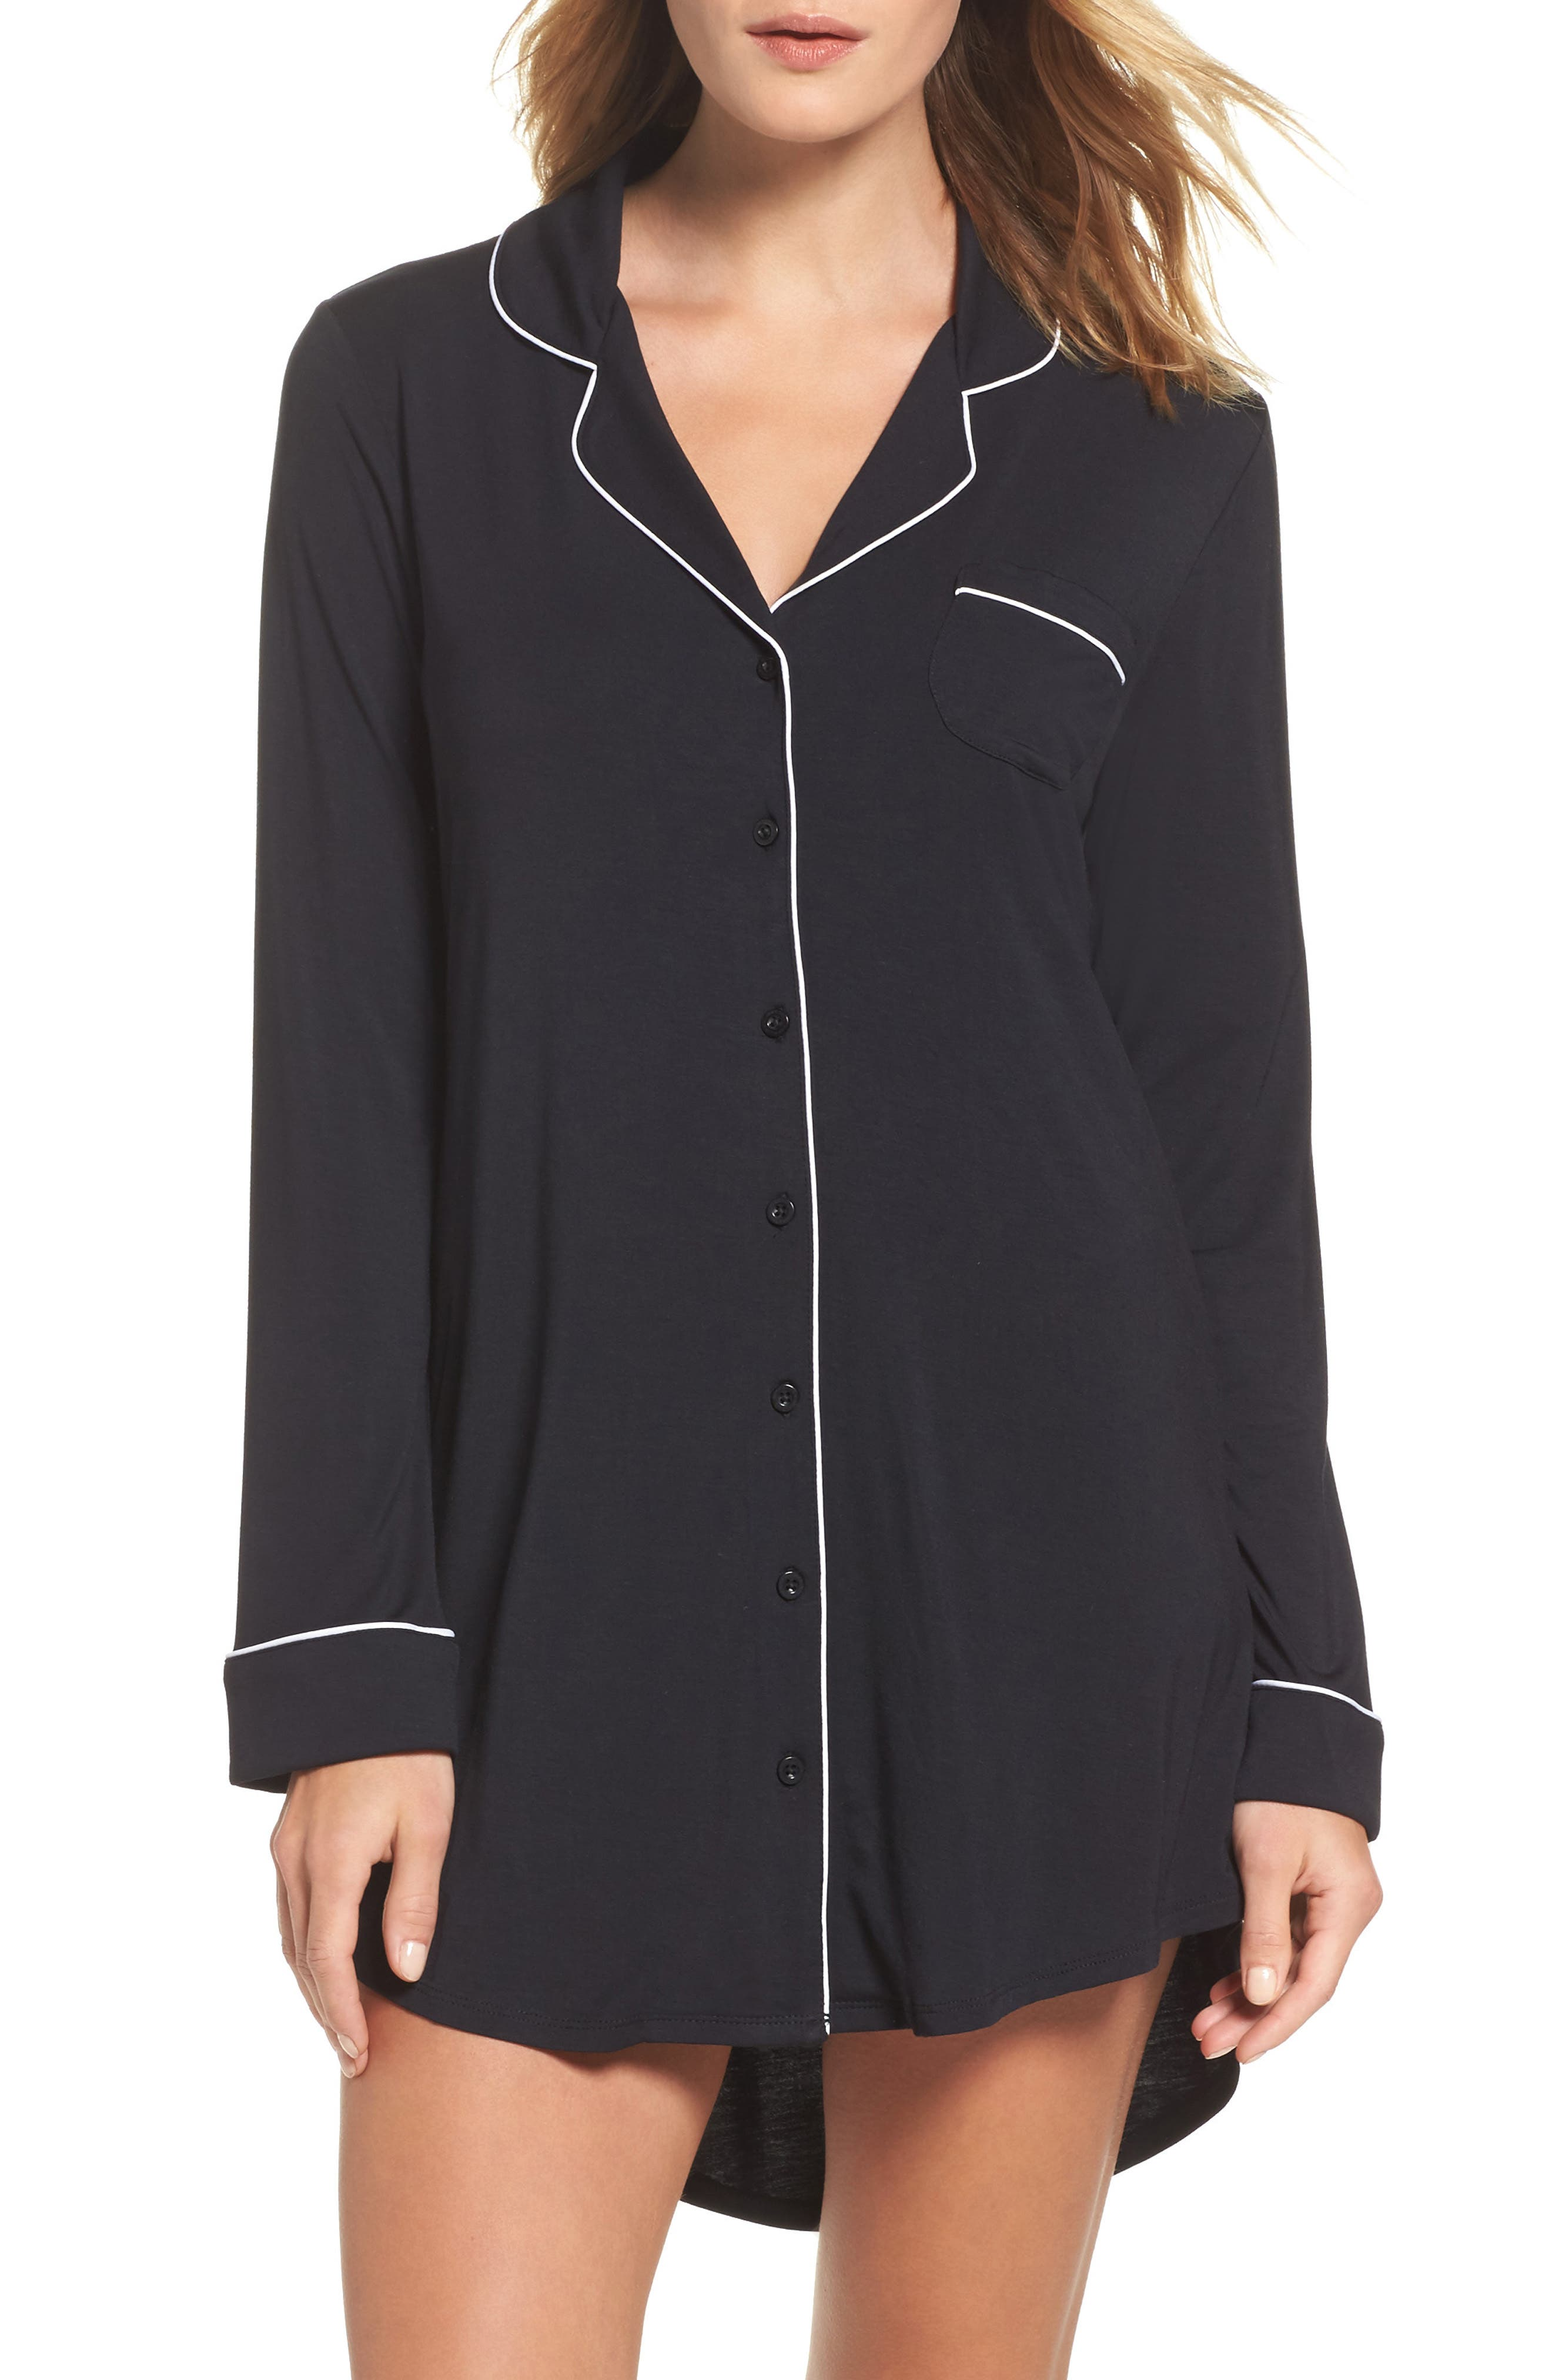 'Moonlight' Nightshirt,                         Main,                         color, BLACK